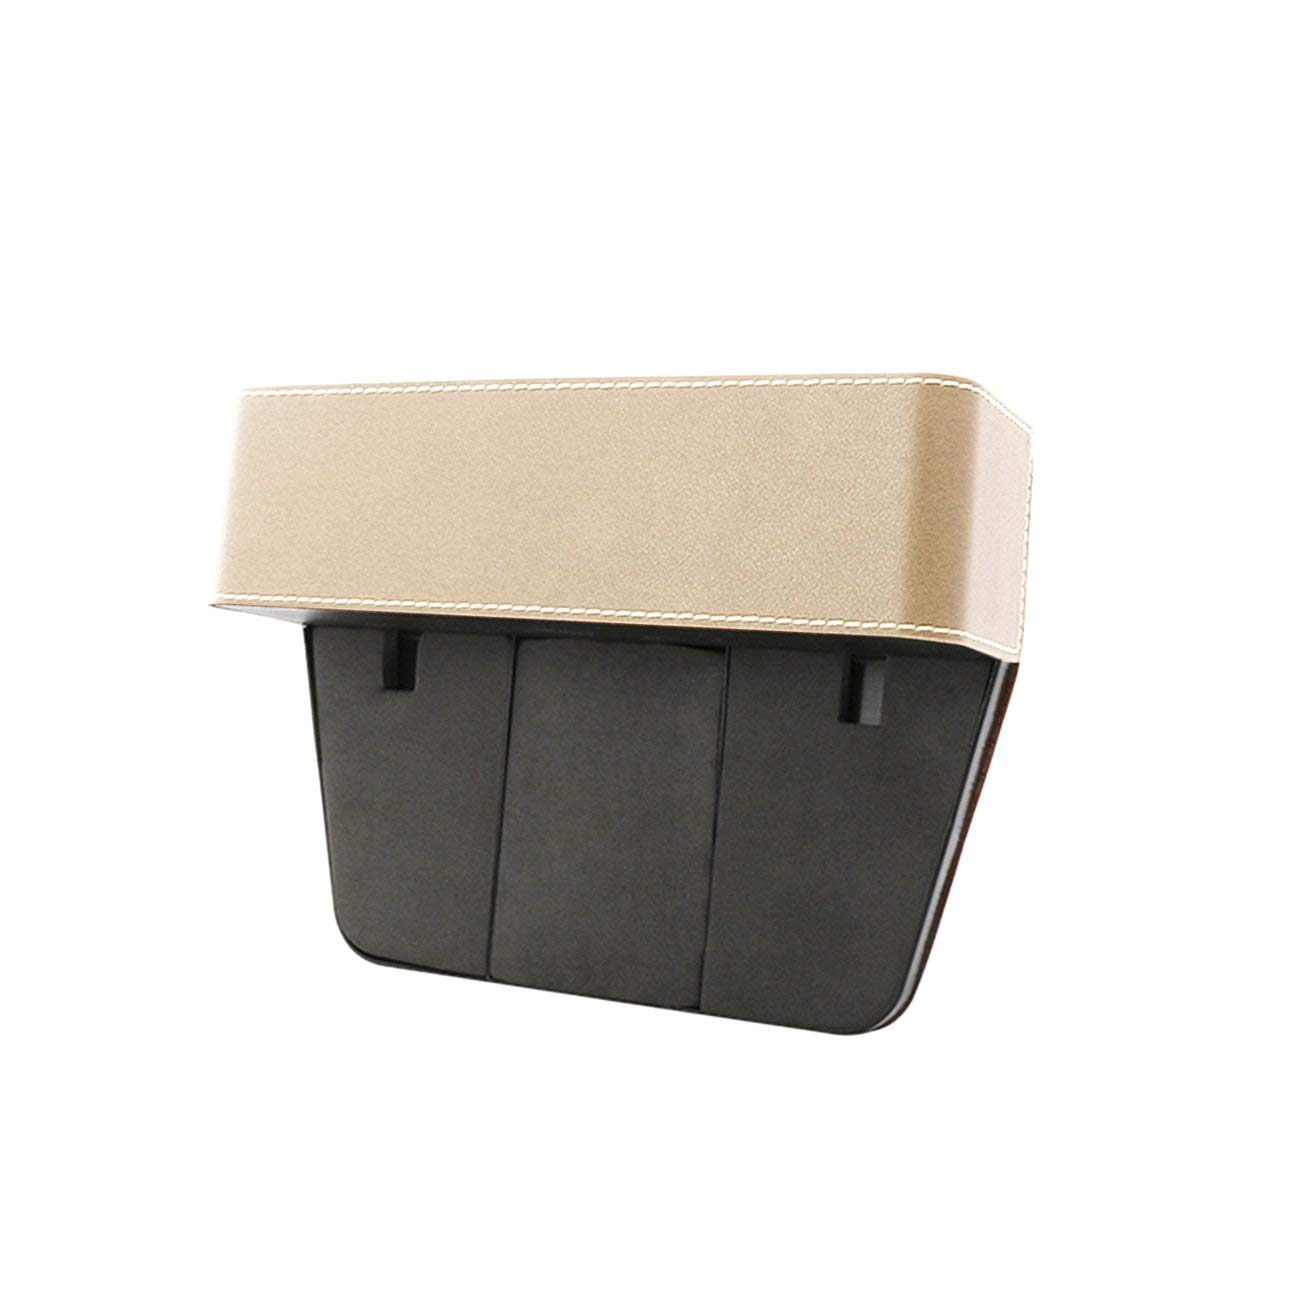 Jiobapiongxin Leather Car Seat Crevice Storage Box Seat Gap Organizing Box Seat Gap Filler